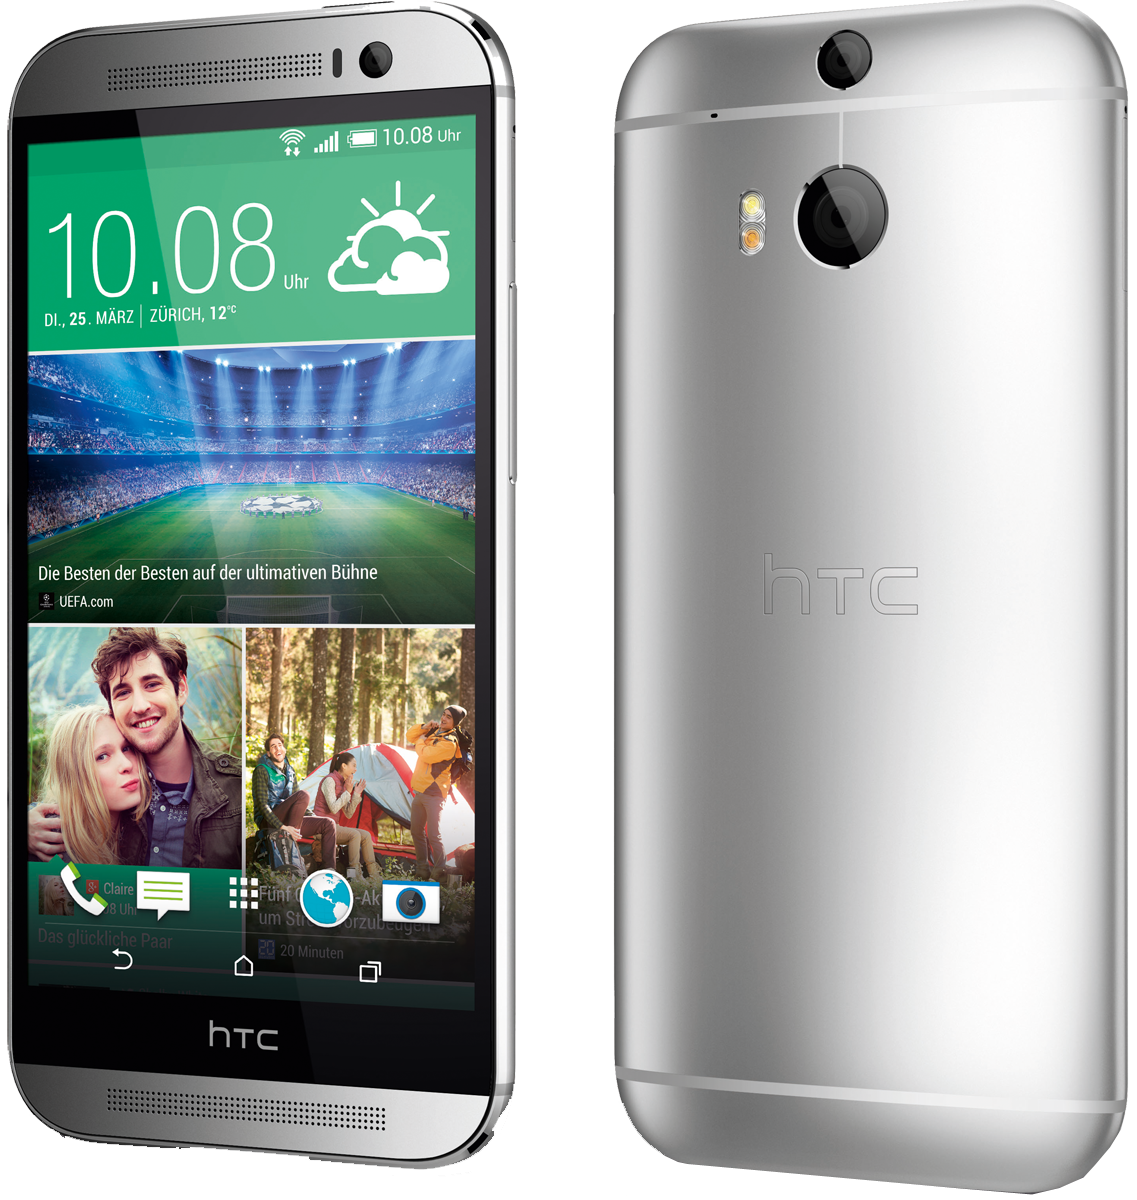 htc one m8 glacial argent android smartphones. Black Bedroom Furniture Sets. Home Design Ideas